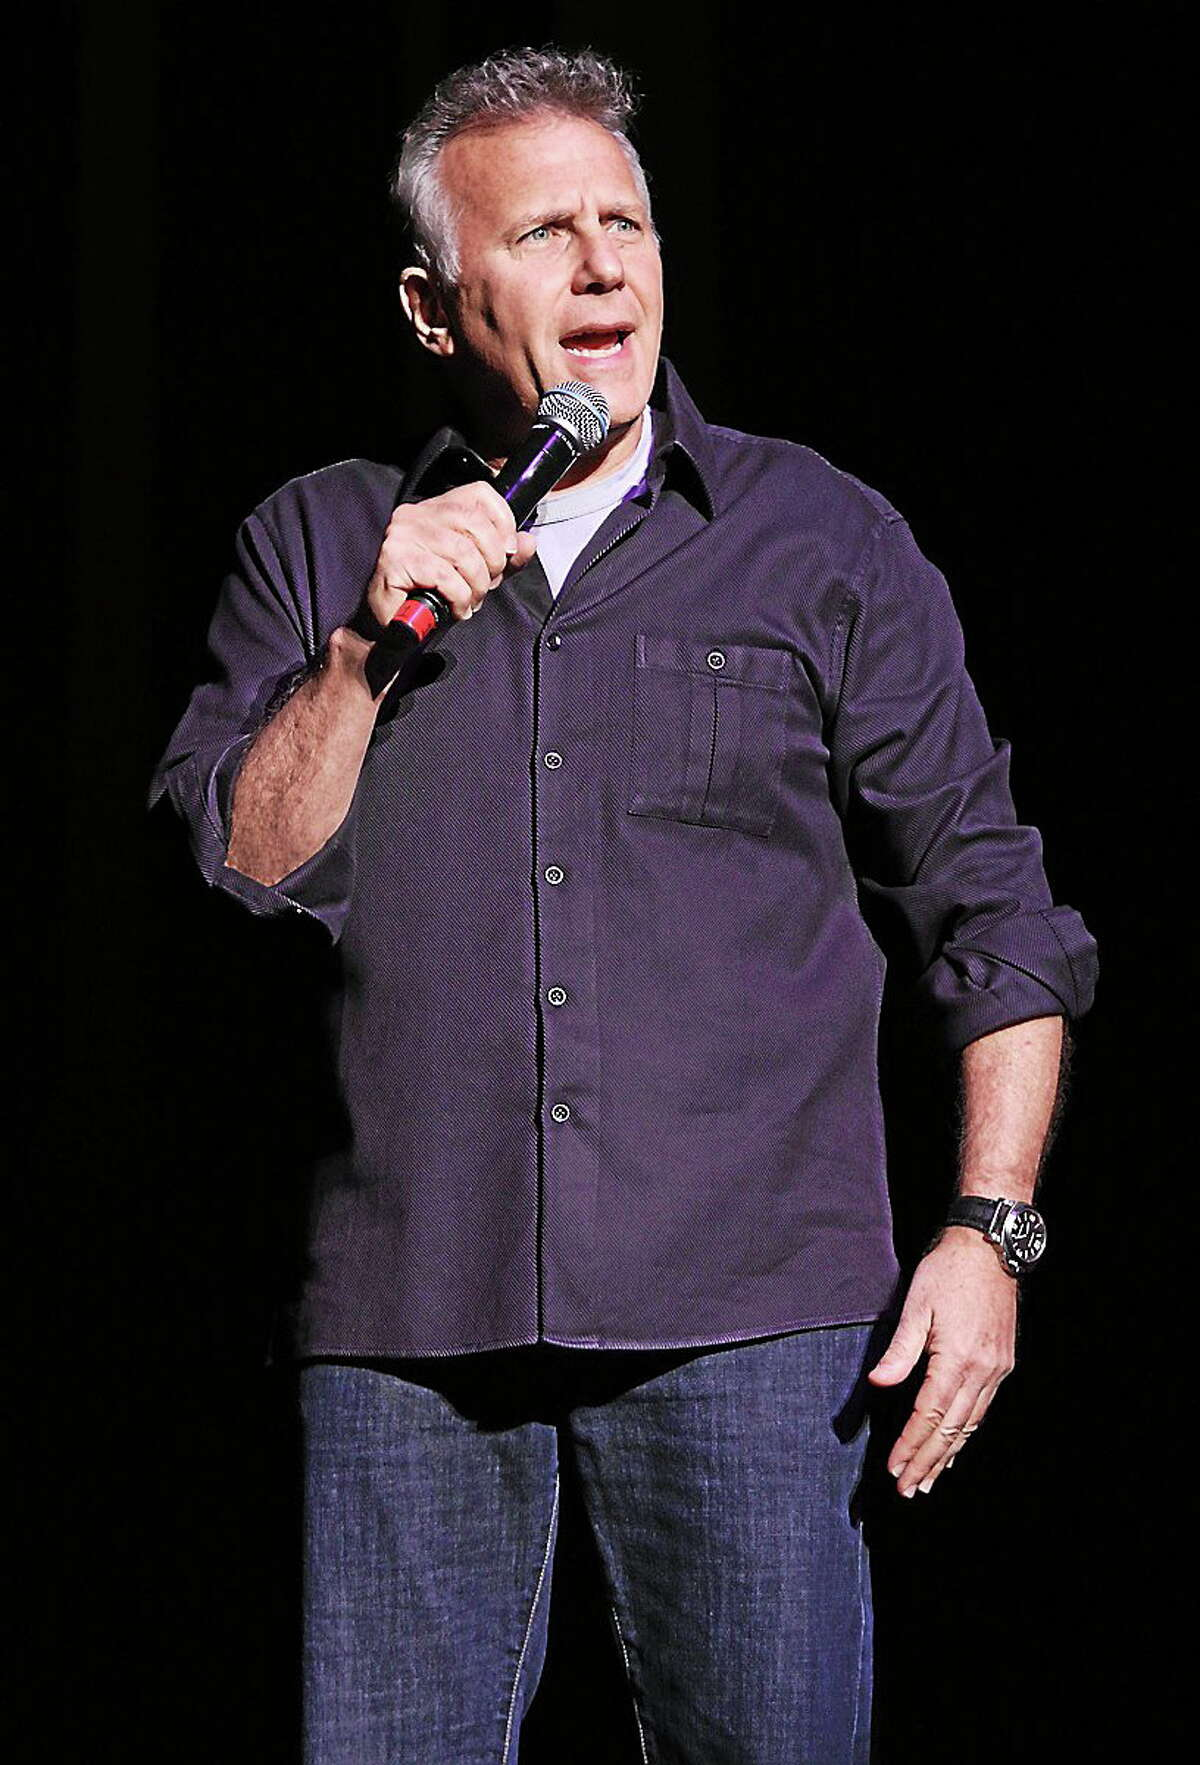 Comedian, actor, television personality, author and musician Paul Reiser is shown entertaining a sold out crowd during a